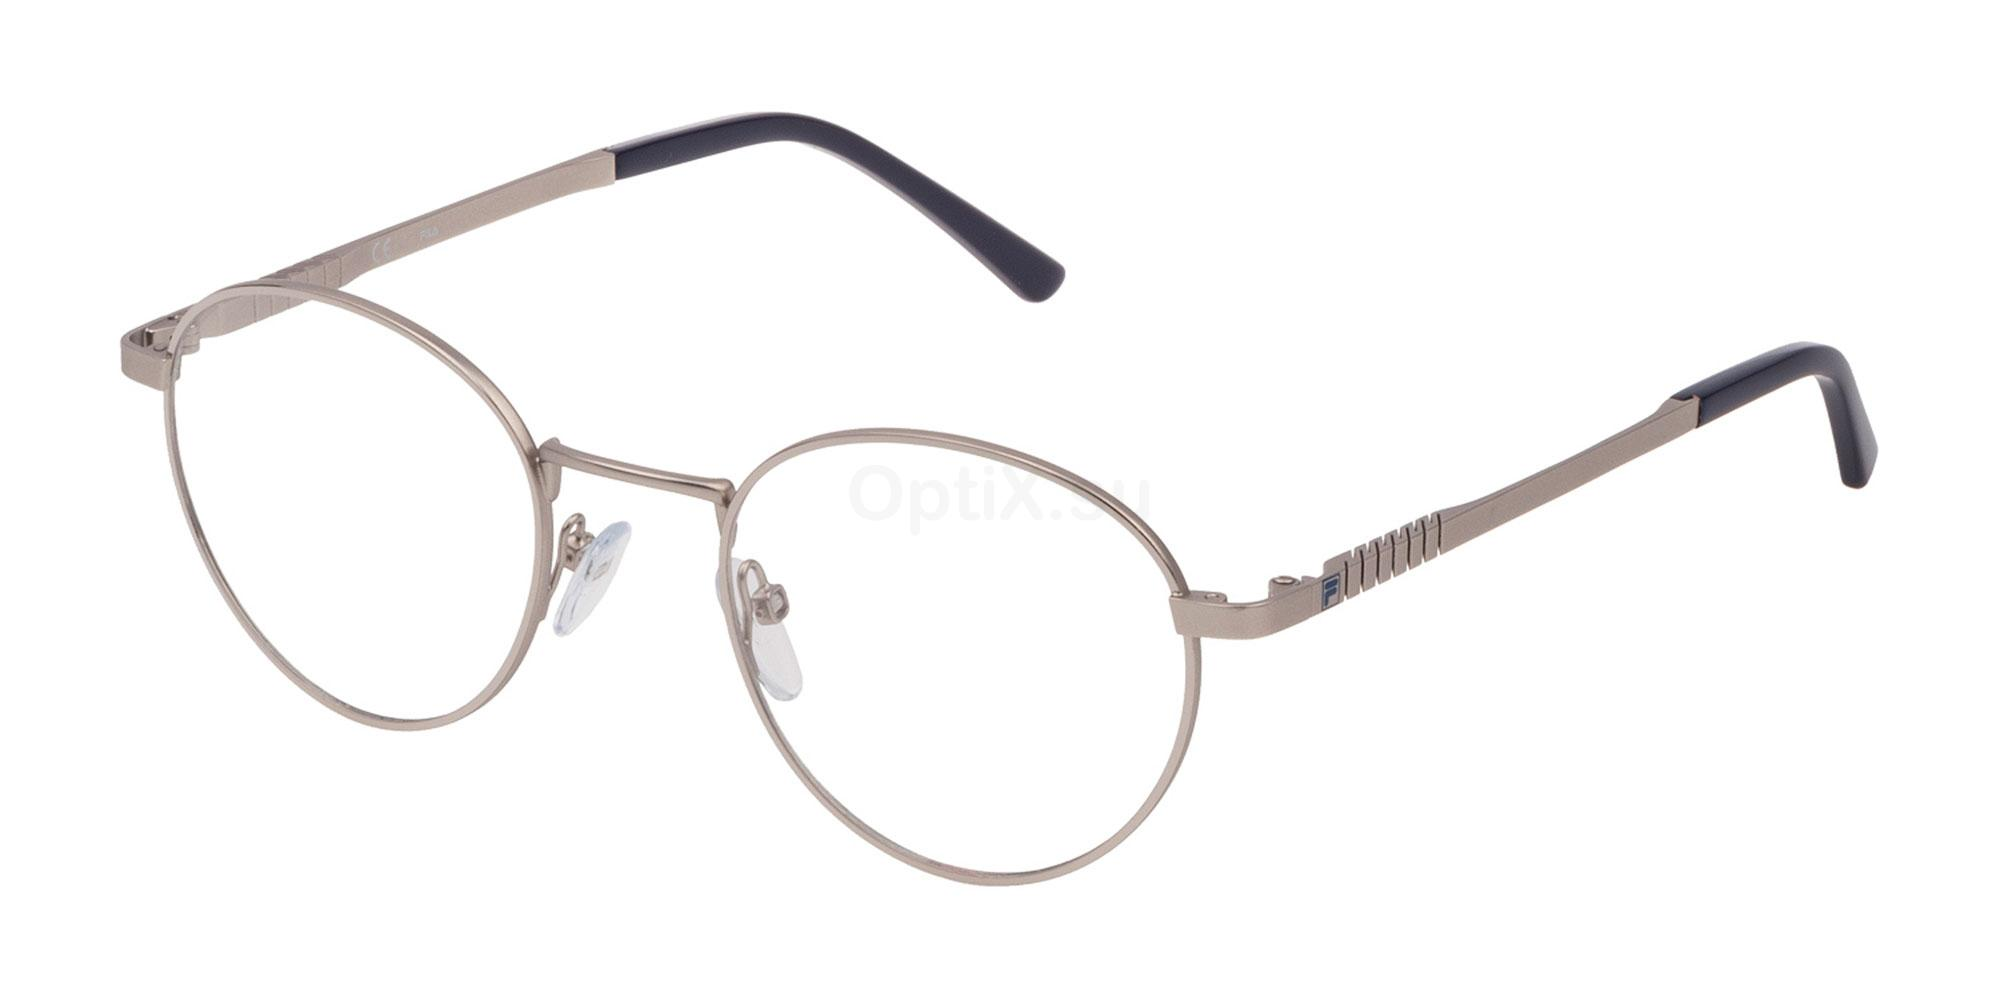 0688 VF9942 Glasses, Fila